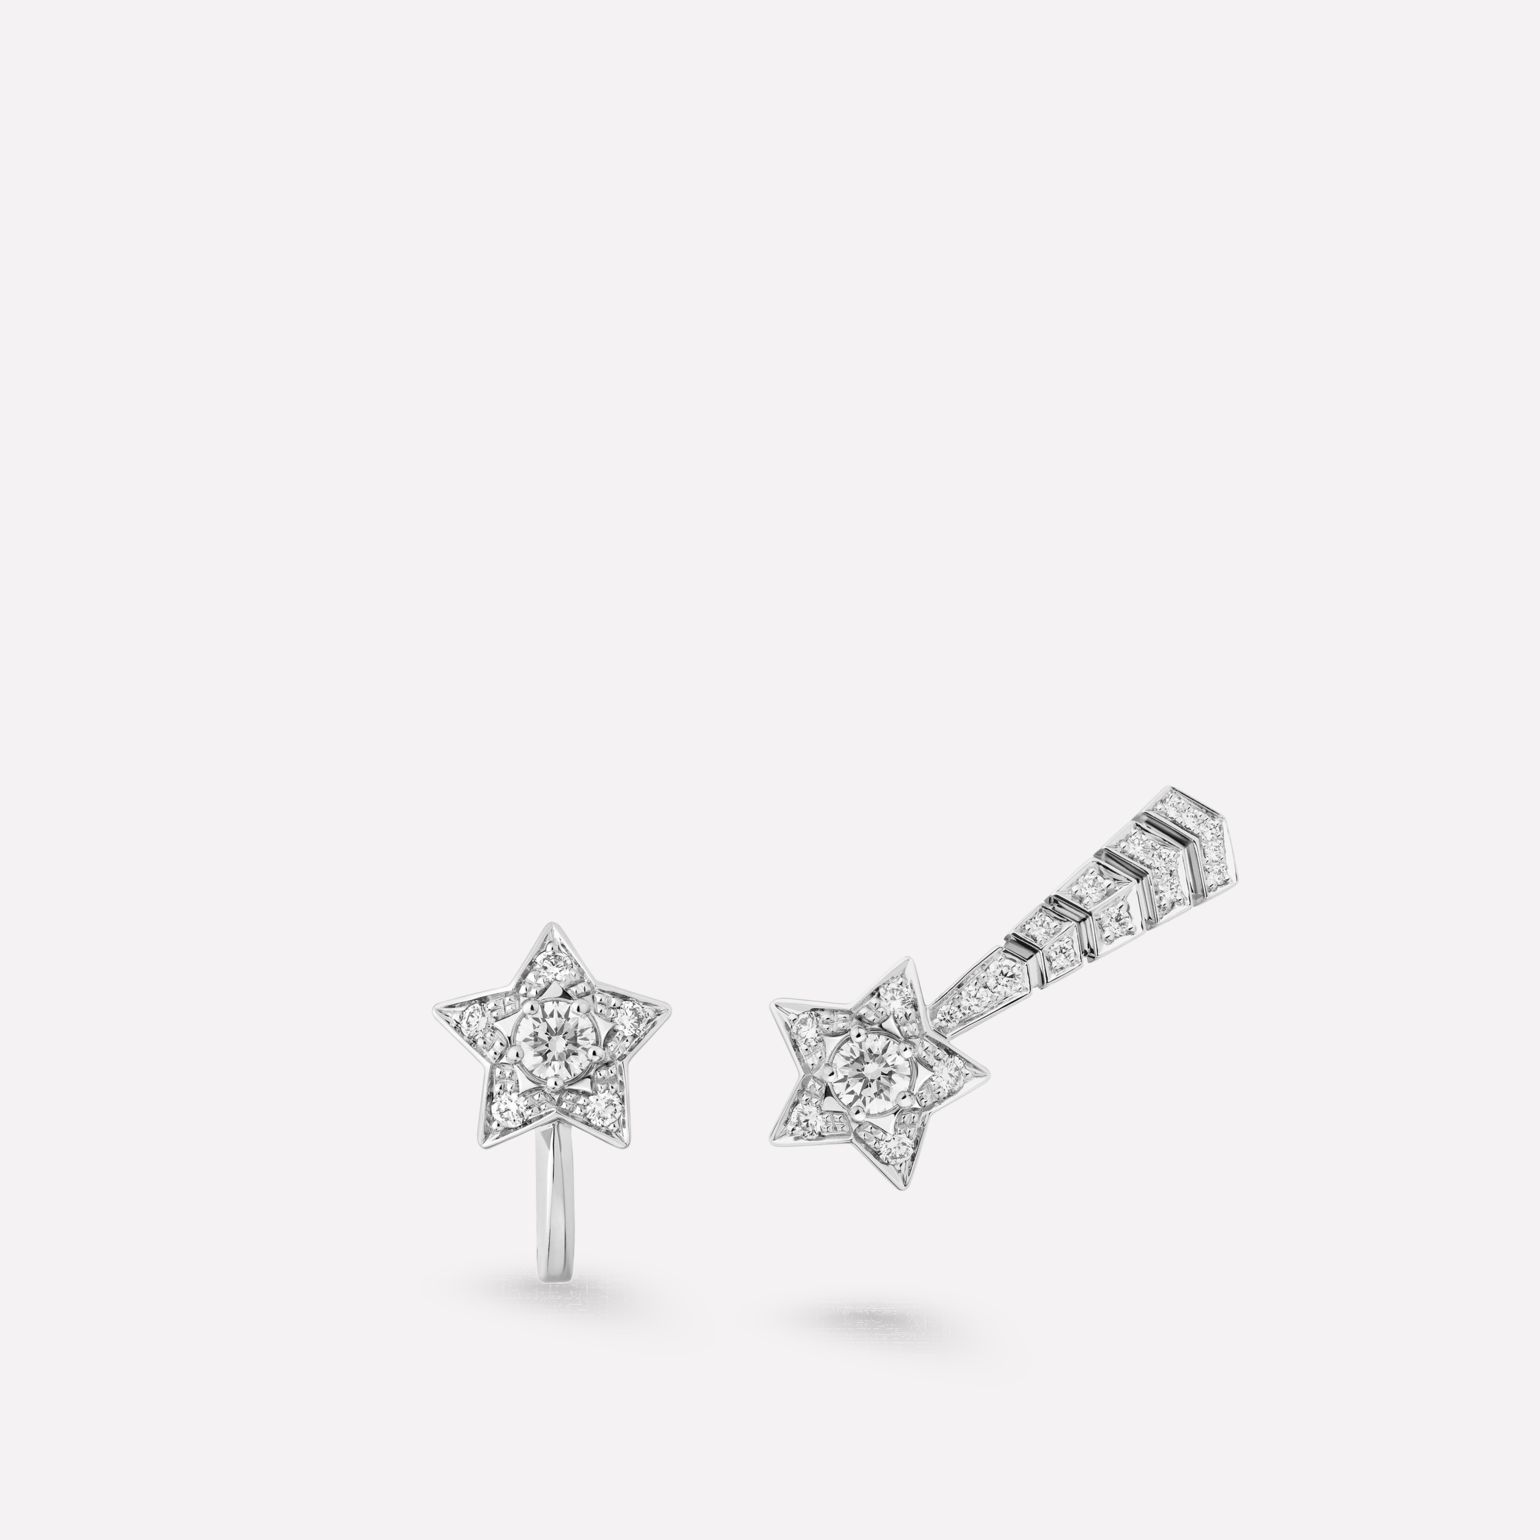 Comète earrings Shooting star earrings in 18K white gold and diamonds with central diamonds